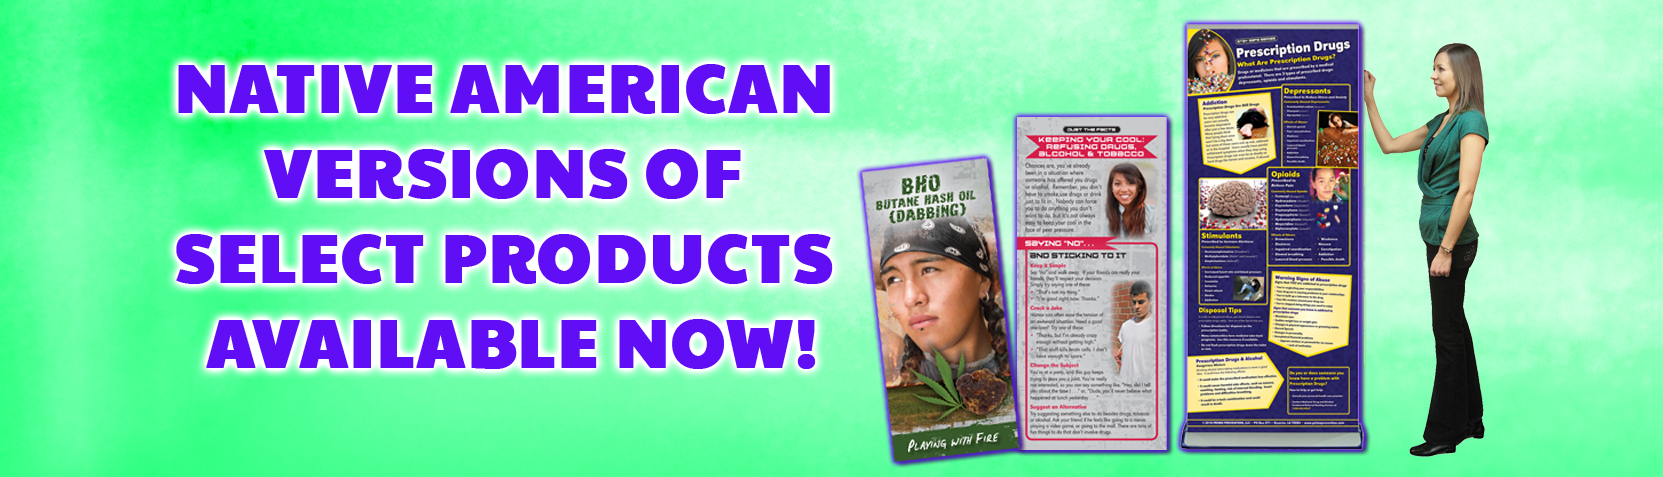 Native-American-Product-Header-Banner